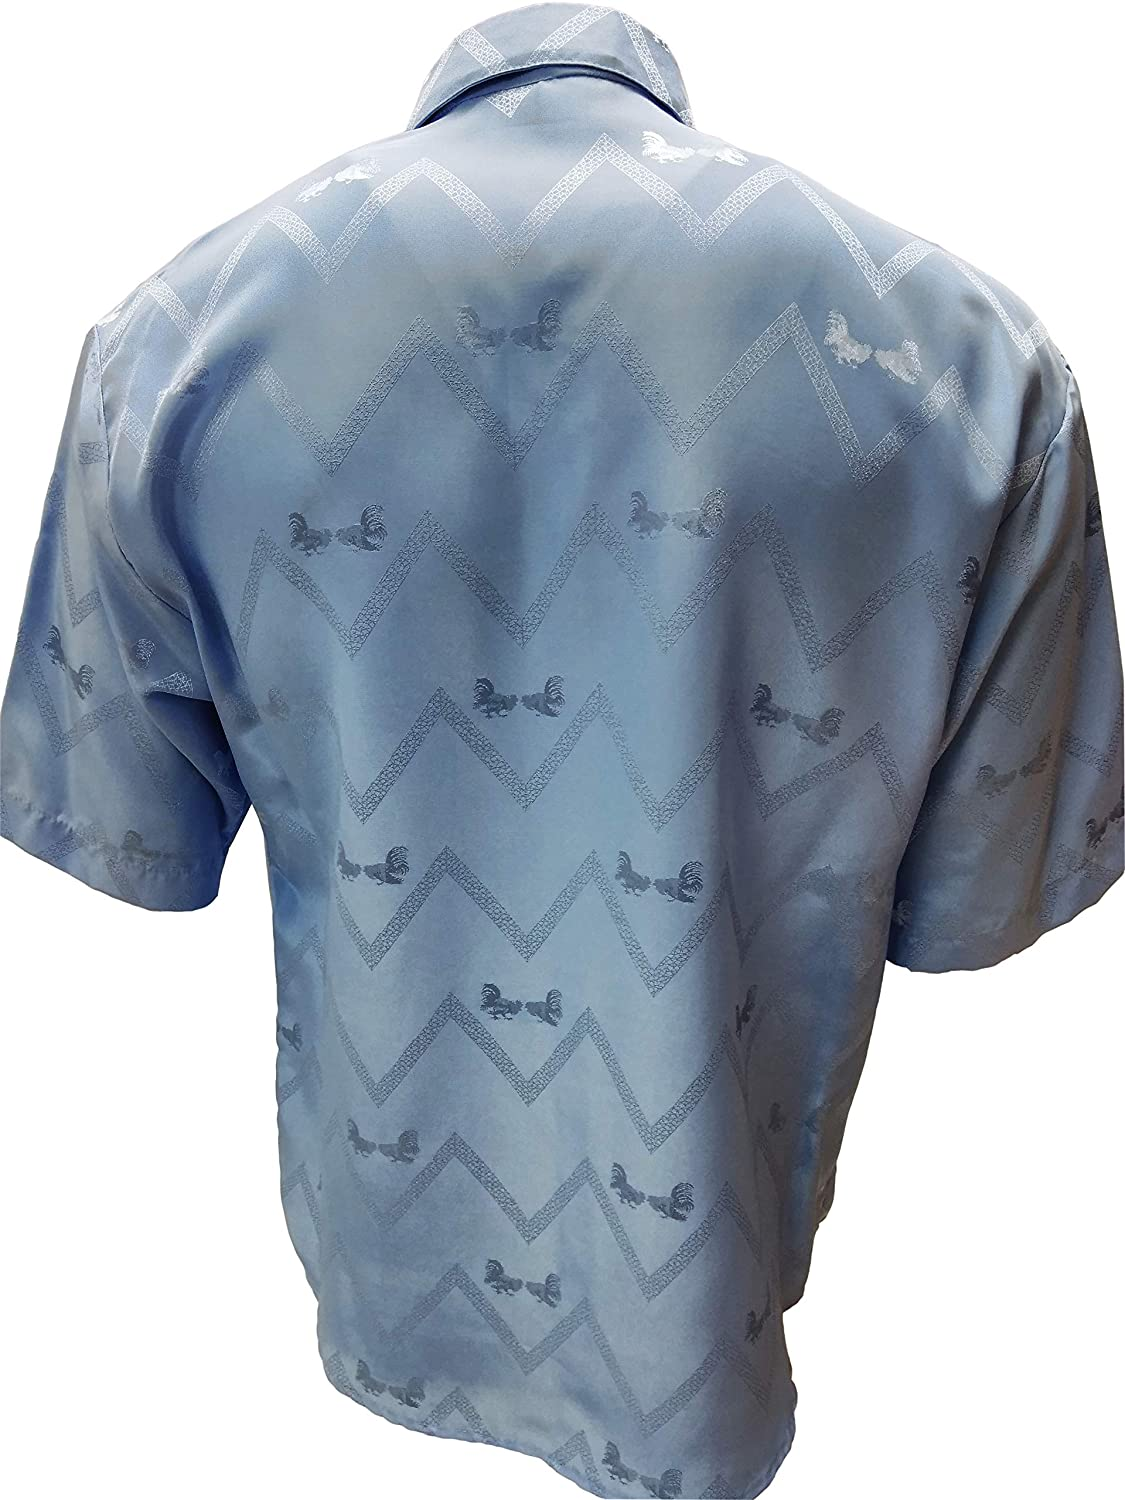 Jackard Solid Shirt Short Sleeve Roosters Blue Made in USA Cowboy Western Shirt